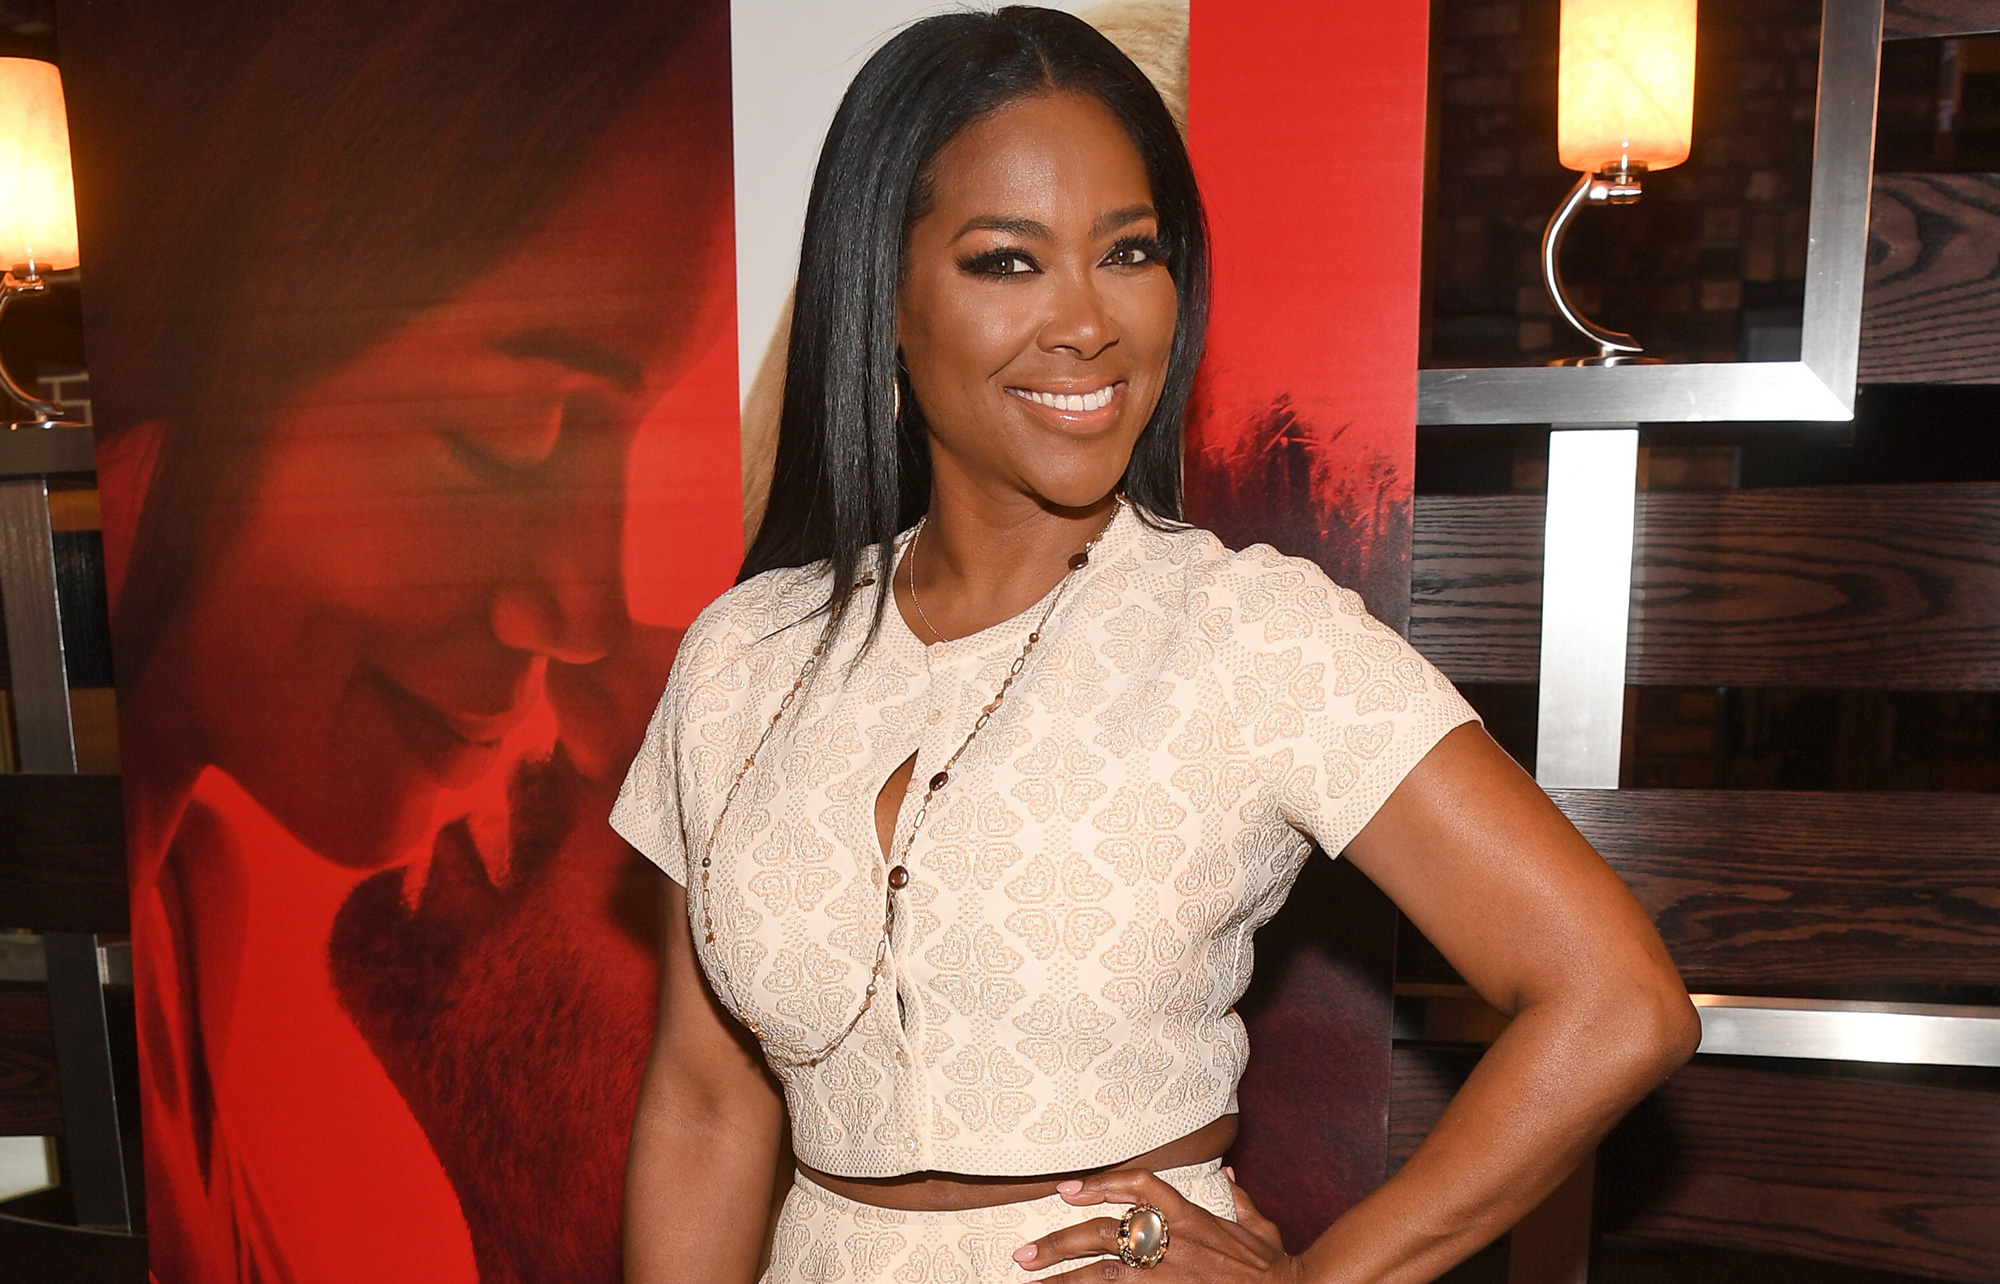 Kenya Moore Is In Full Mommy Mode, Strolling Into Brunch 'Like A Boss' - Fans Freak Out After Seeing Her Outfit